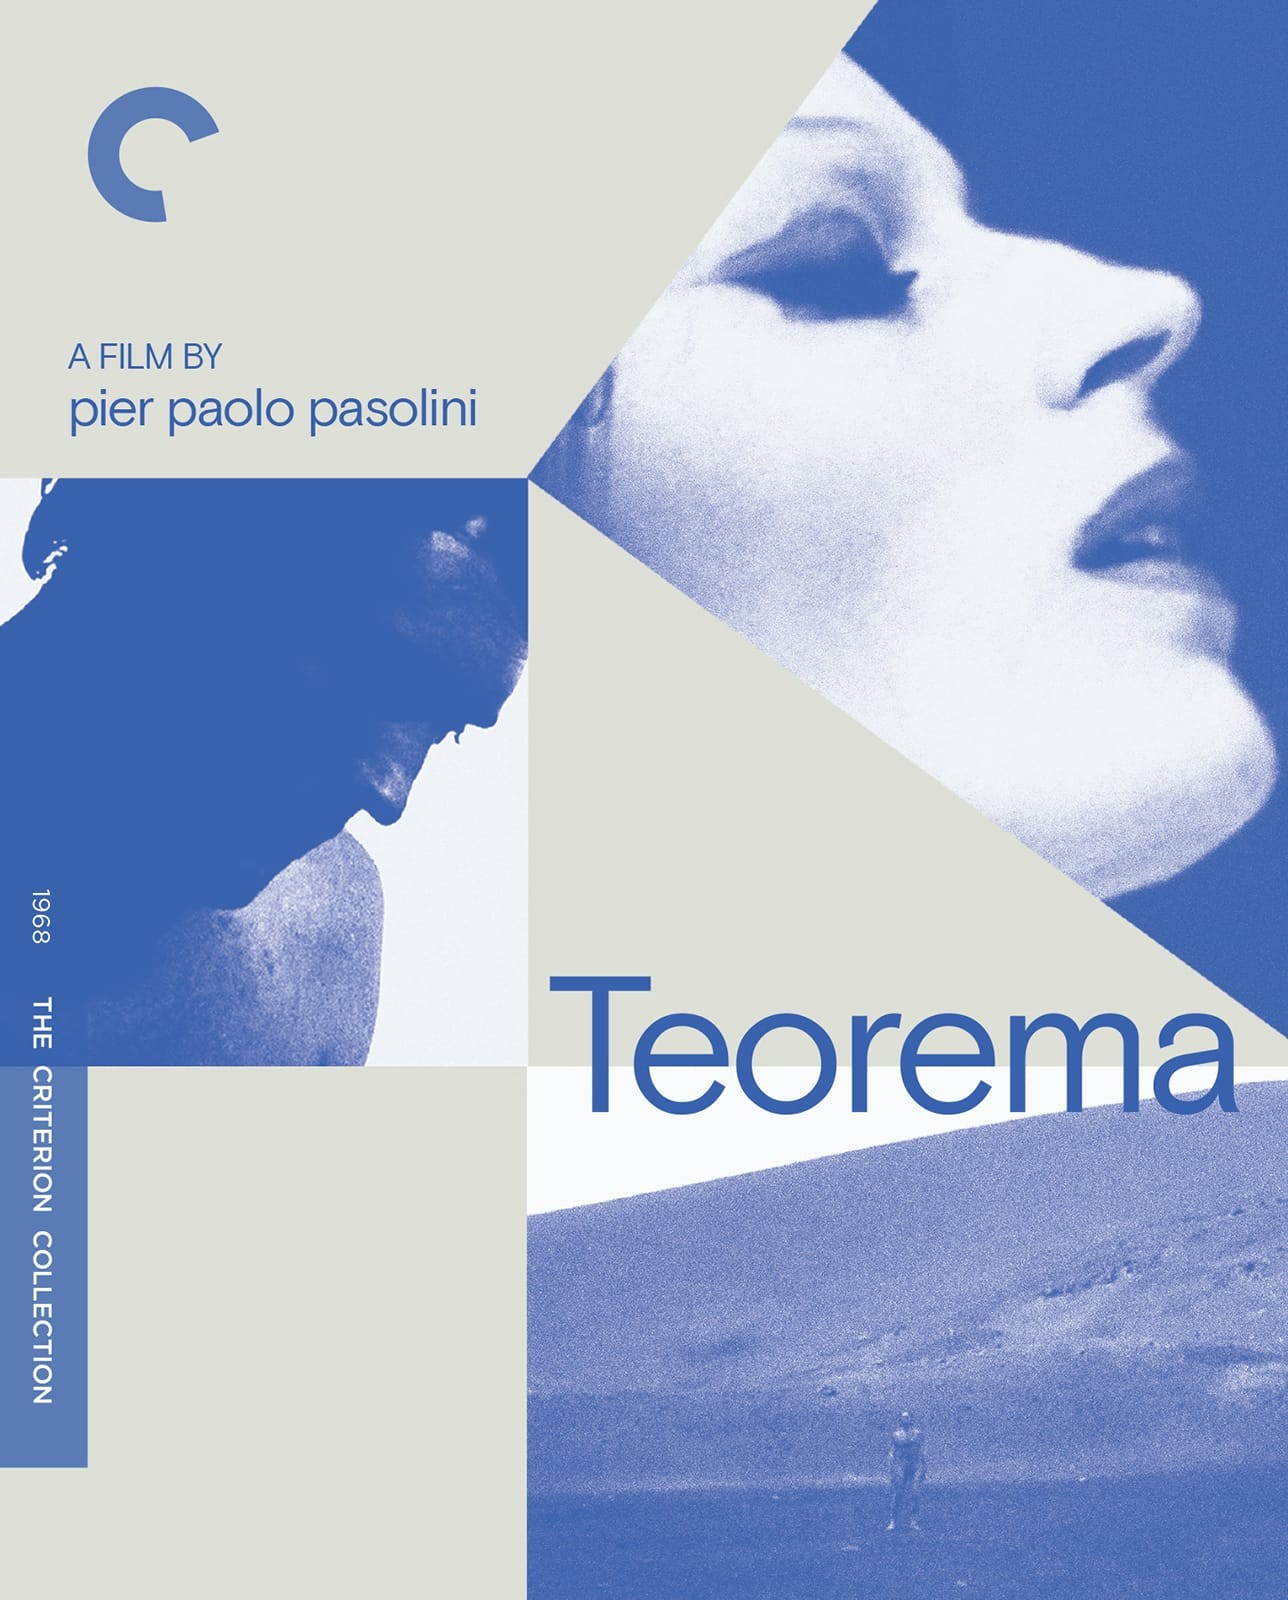 Teorema (1968) | The Criterion Collection